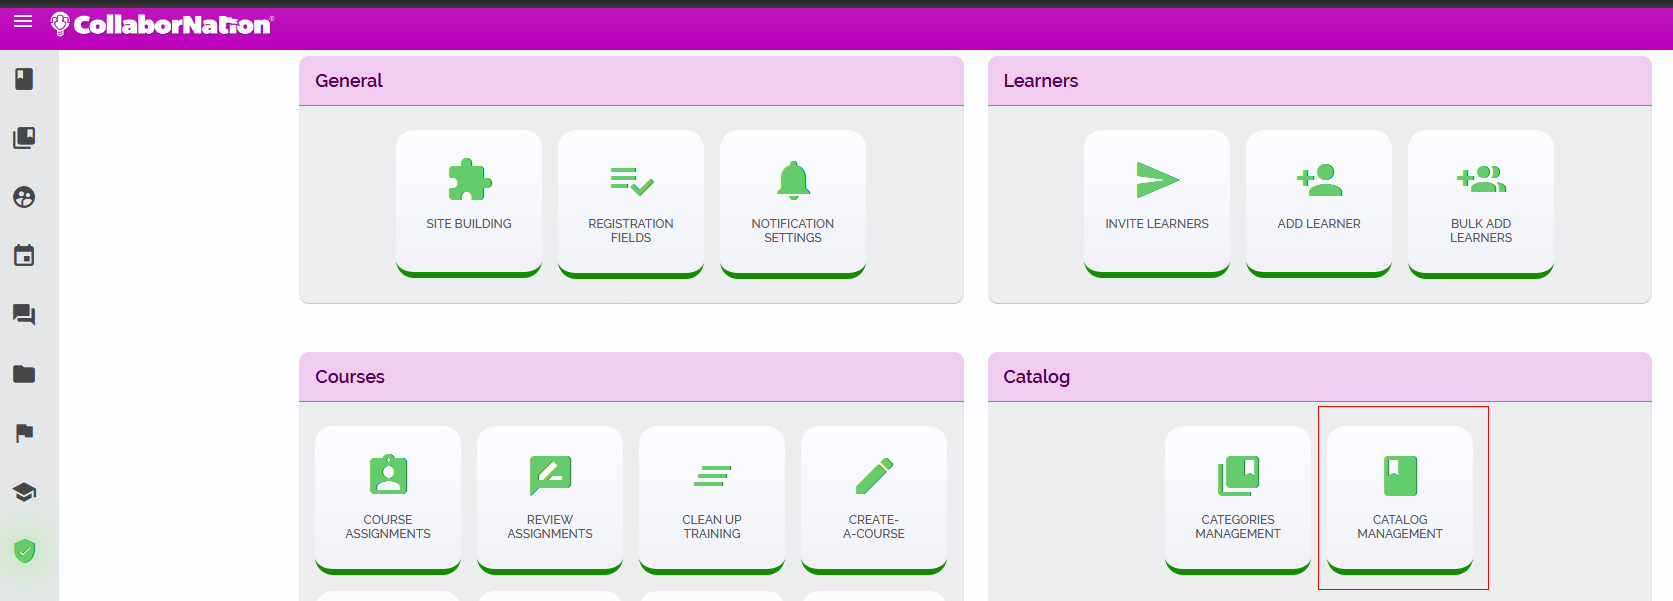 Access the Catalog Management page from the Admin Tools section.